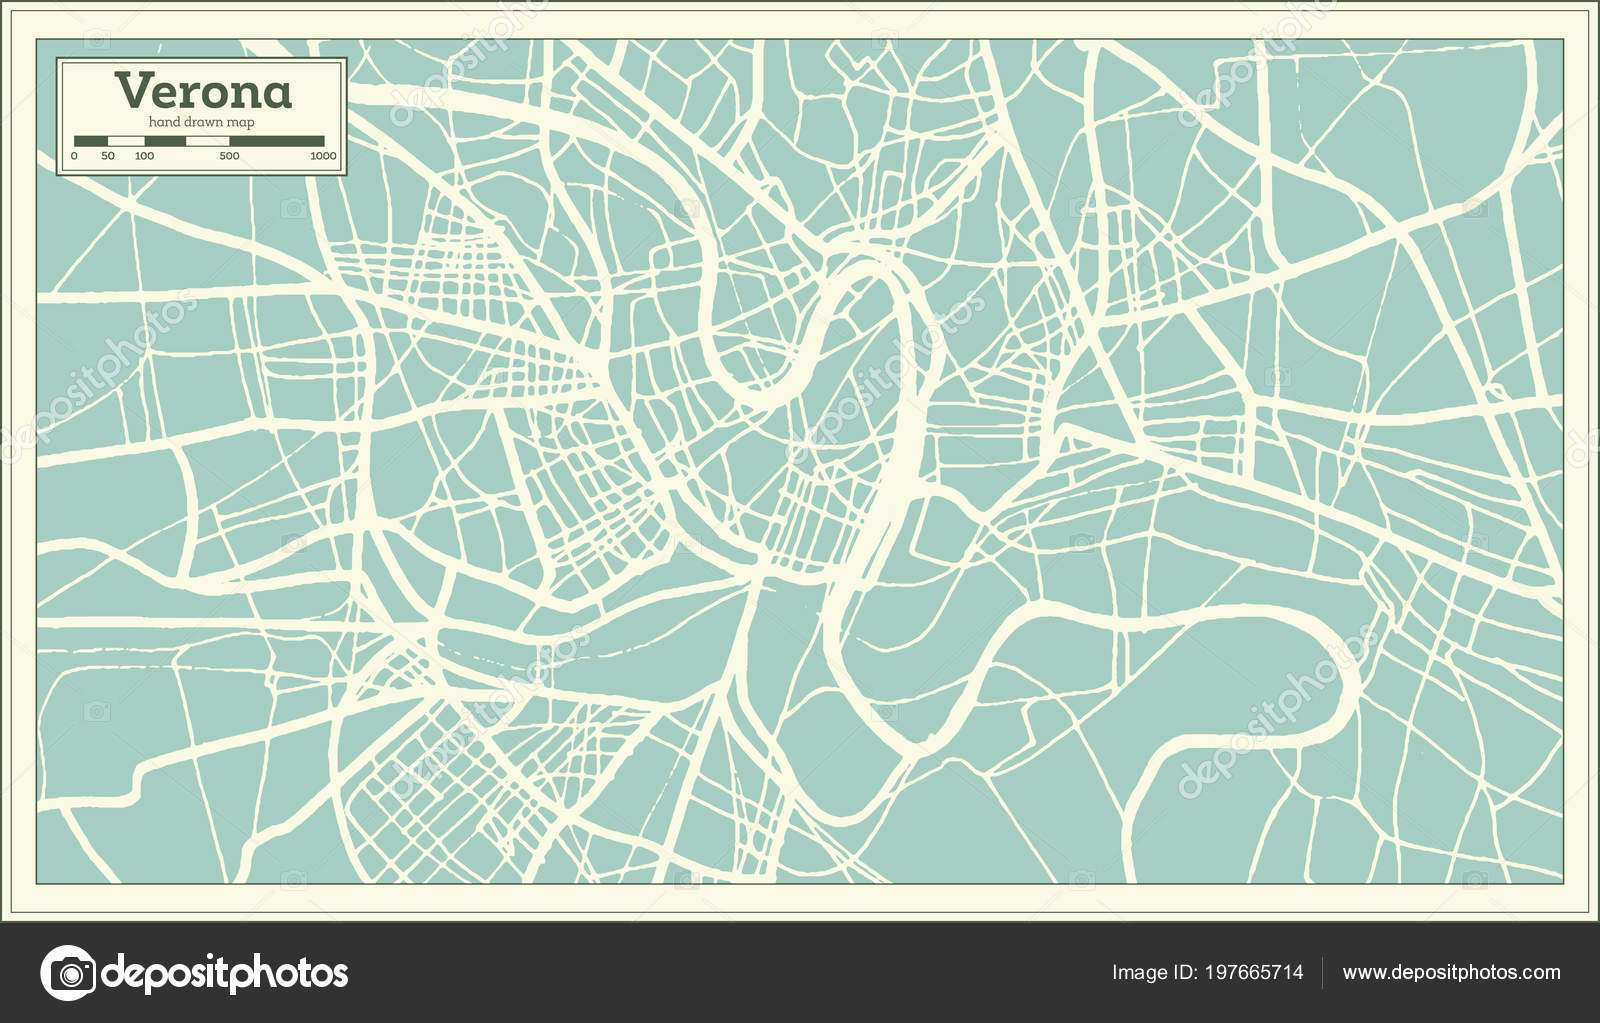 Verona Italy City Map Retro Style Outline Map Vector Illustration